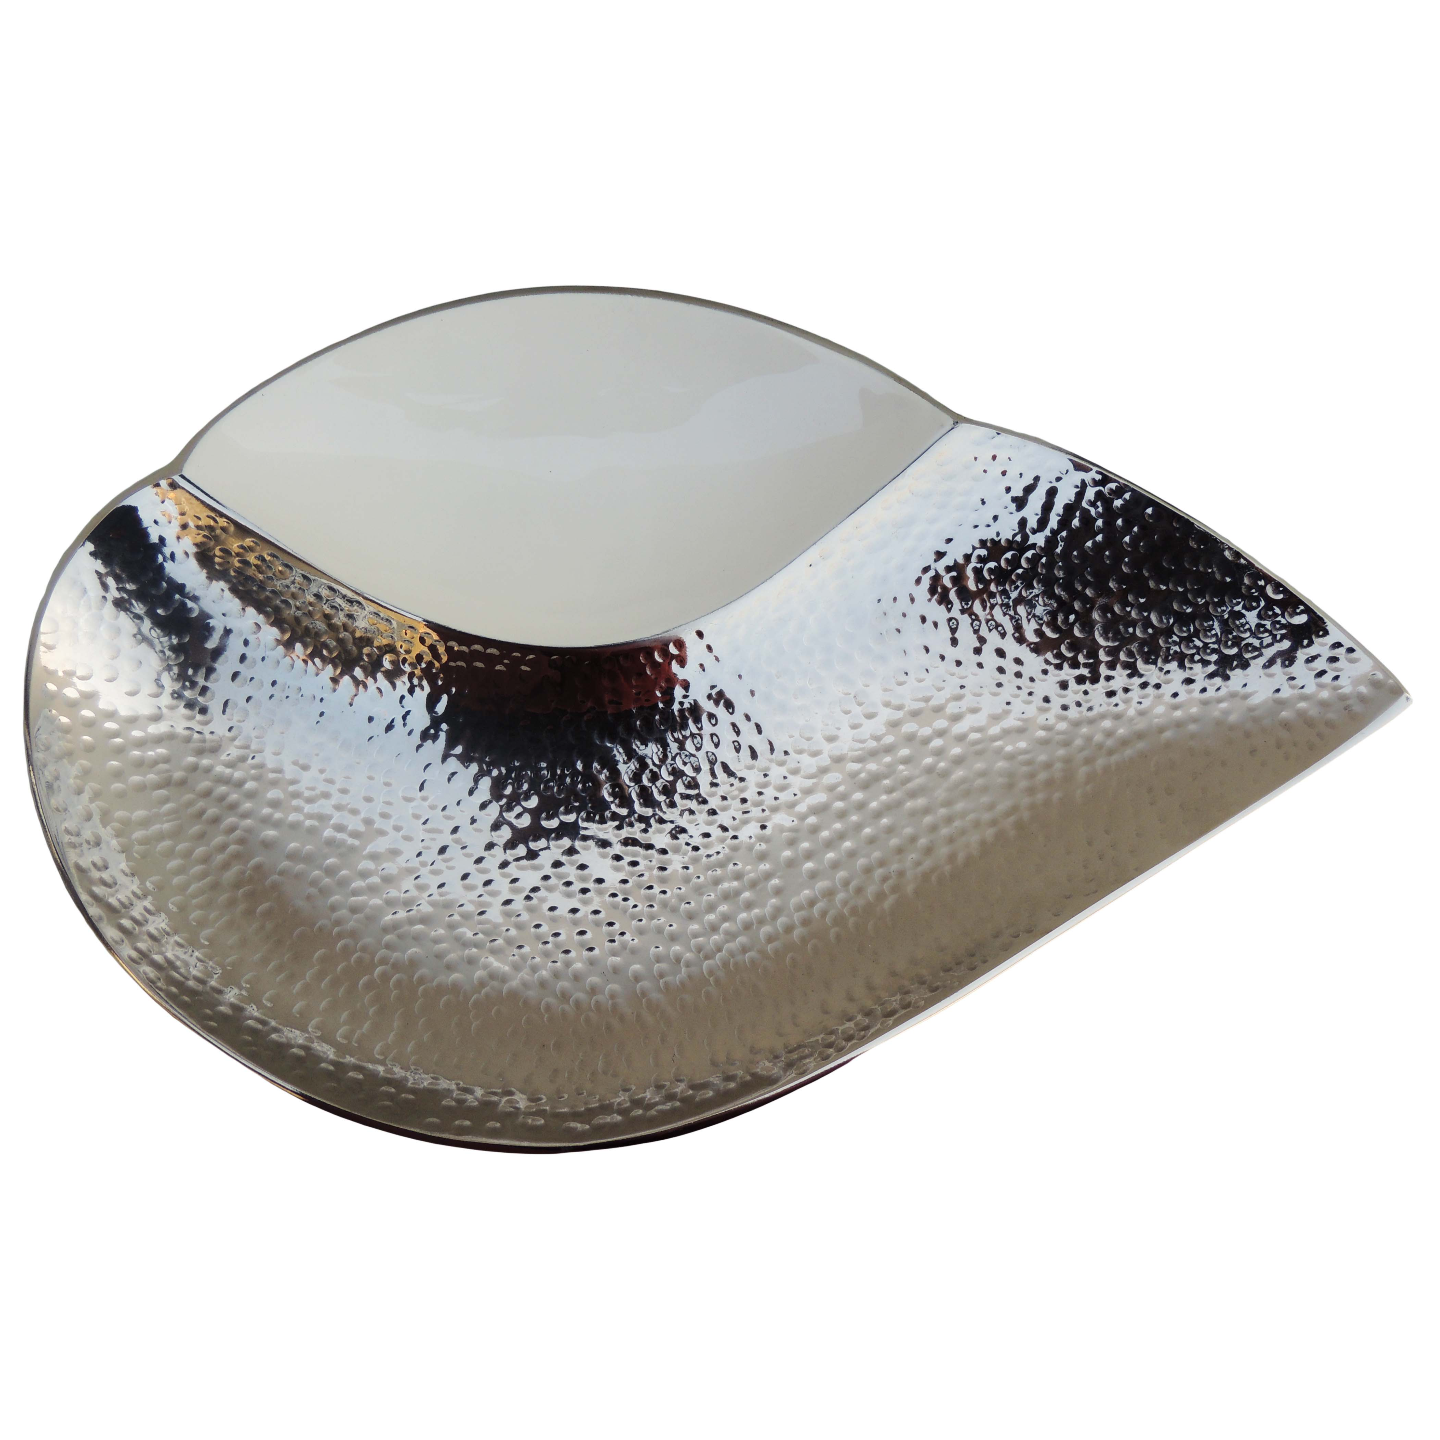 Aluminium Metal Shank Shape Serving Platter with white and Nickel Finish- 15*9.5 Inch  (A282/15)